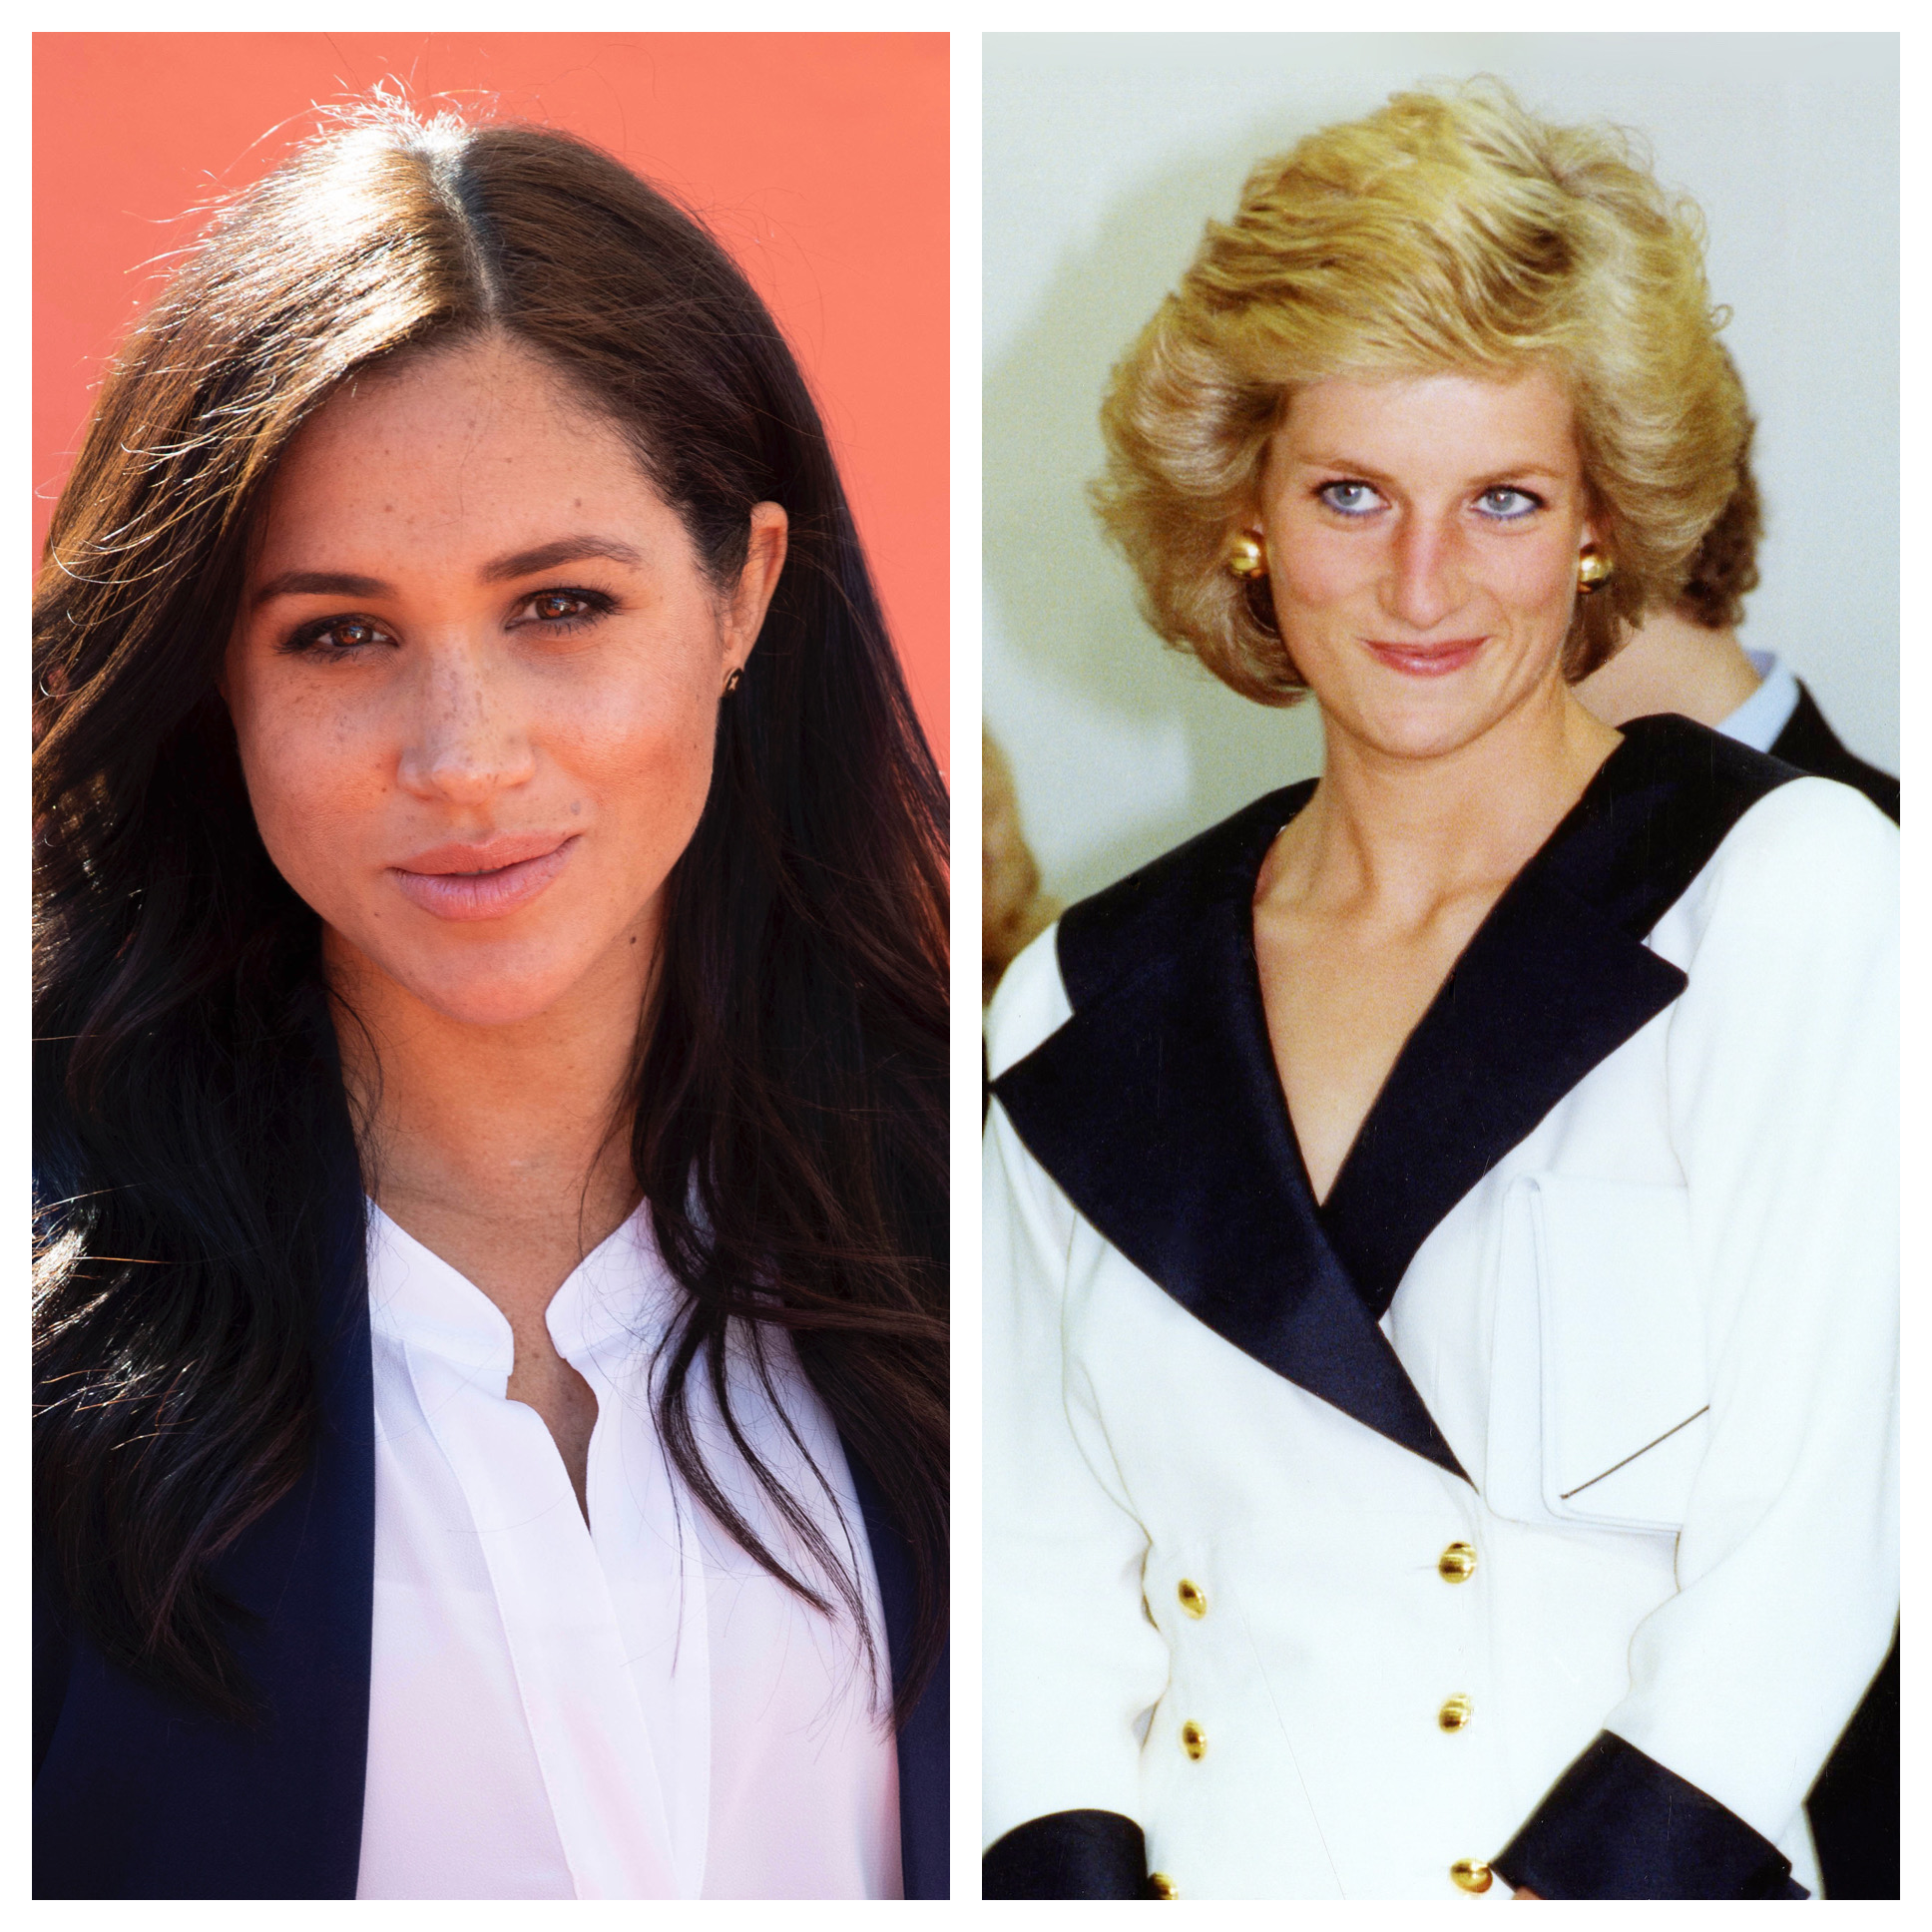 Meghan Markle Interview: 7 Similarities With Princess Diana's 1995 Interview